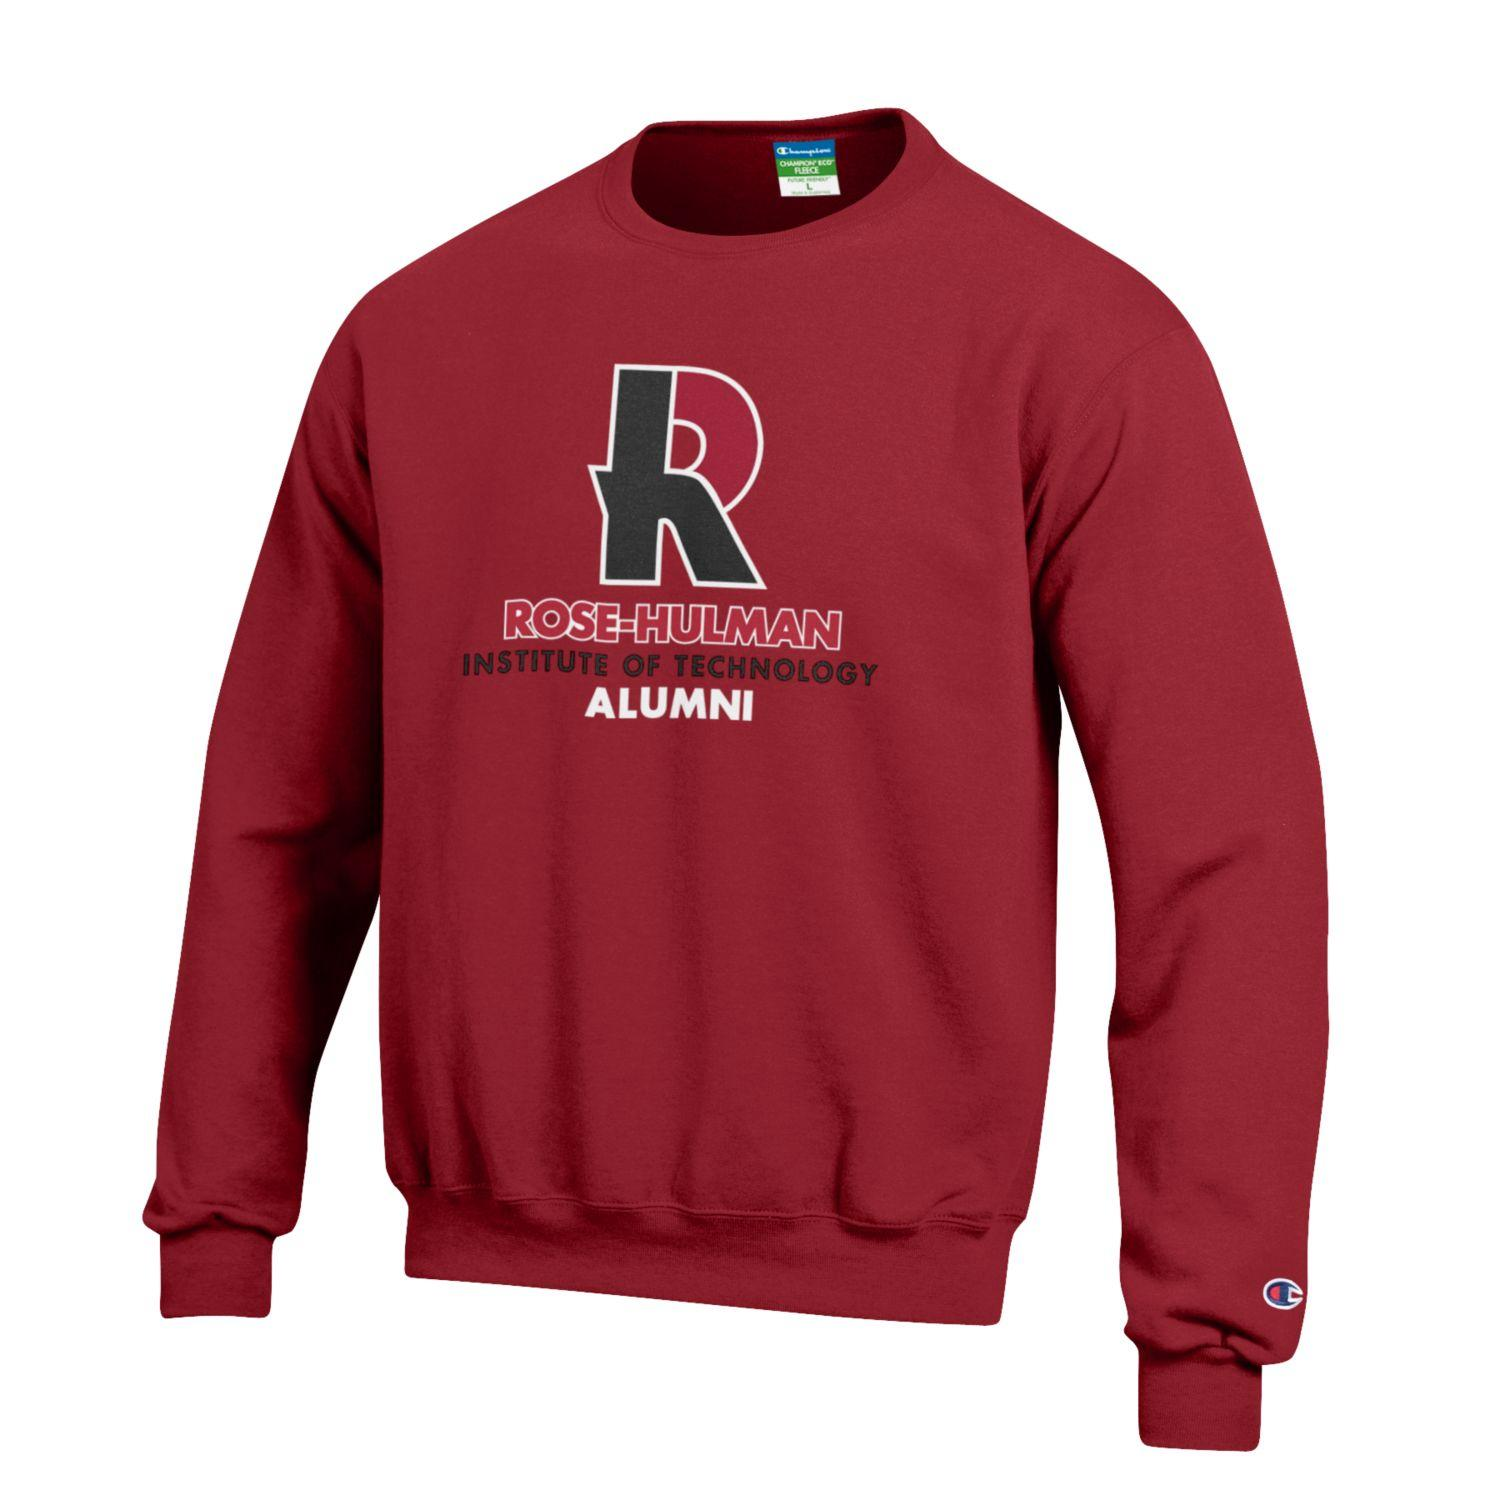 Image For Champion Cardinal or Charcoal Sweatshirt for Alumni